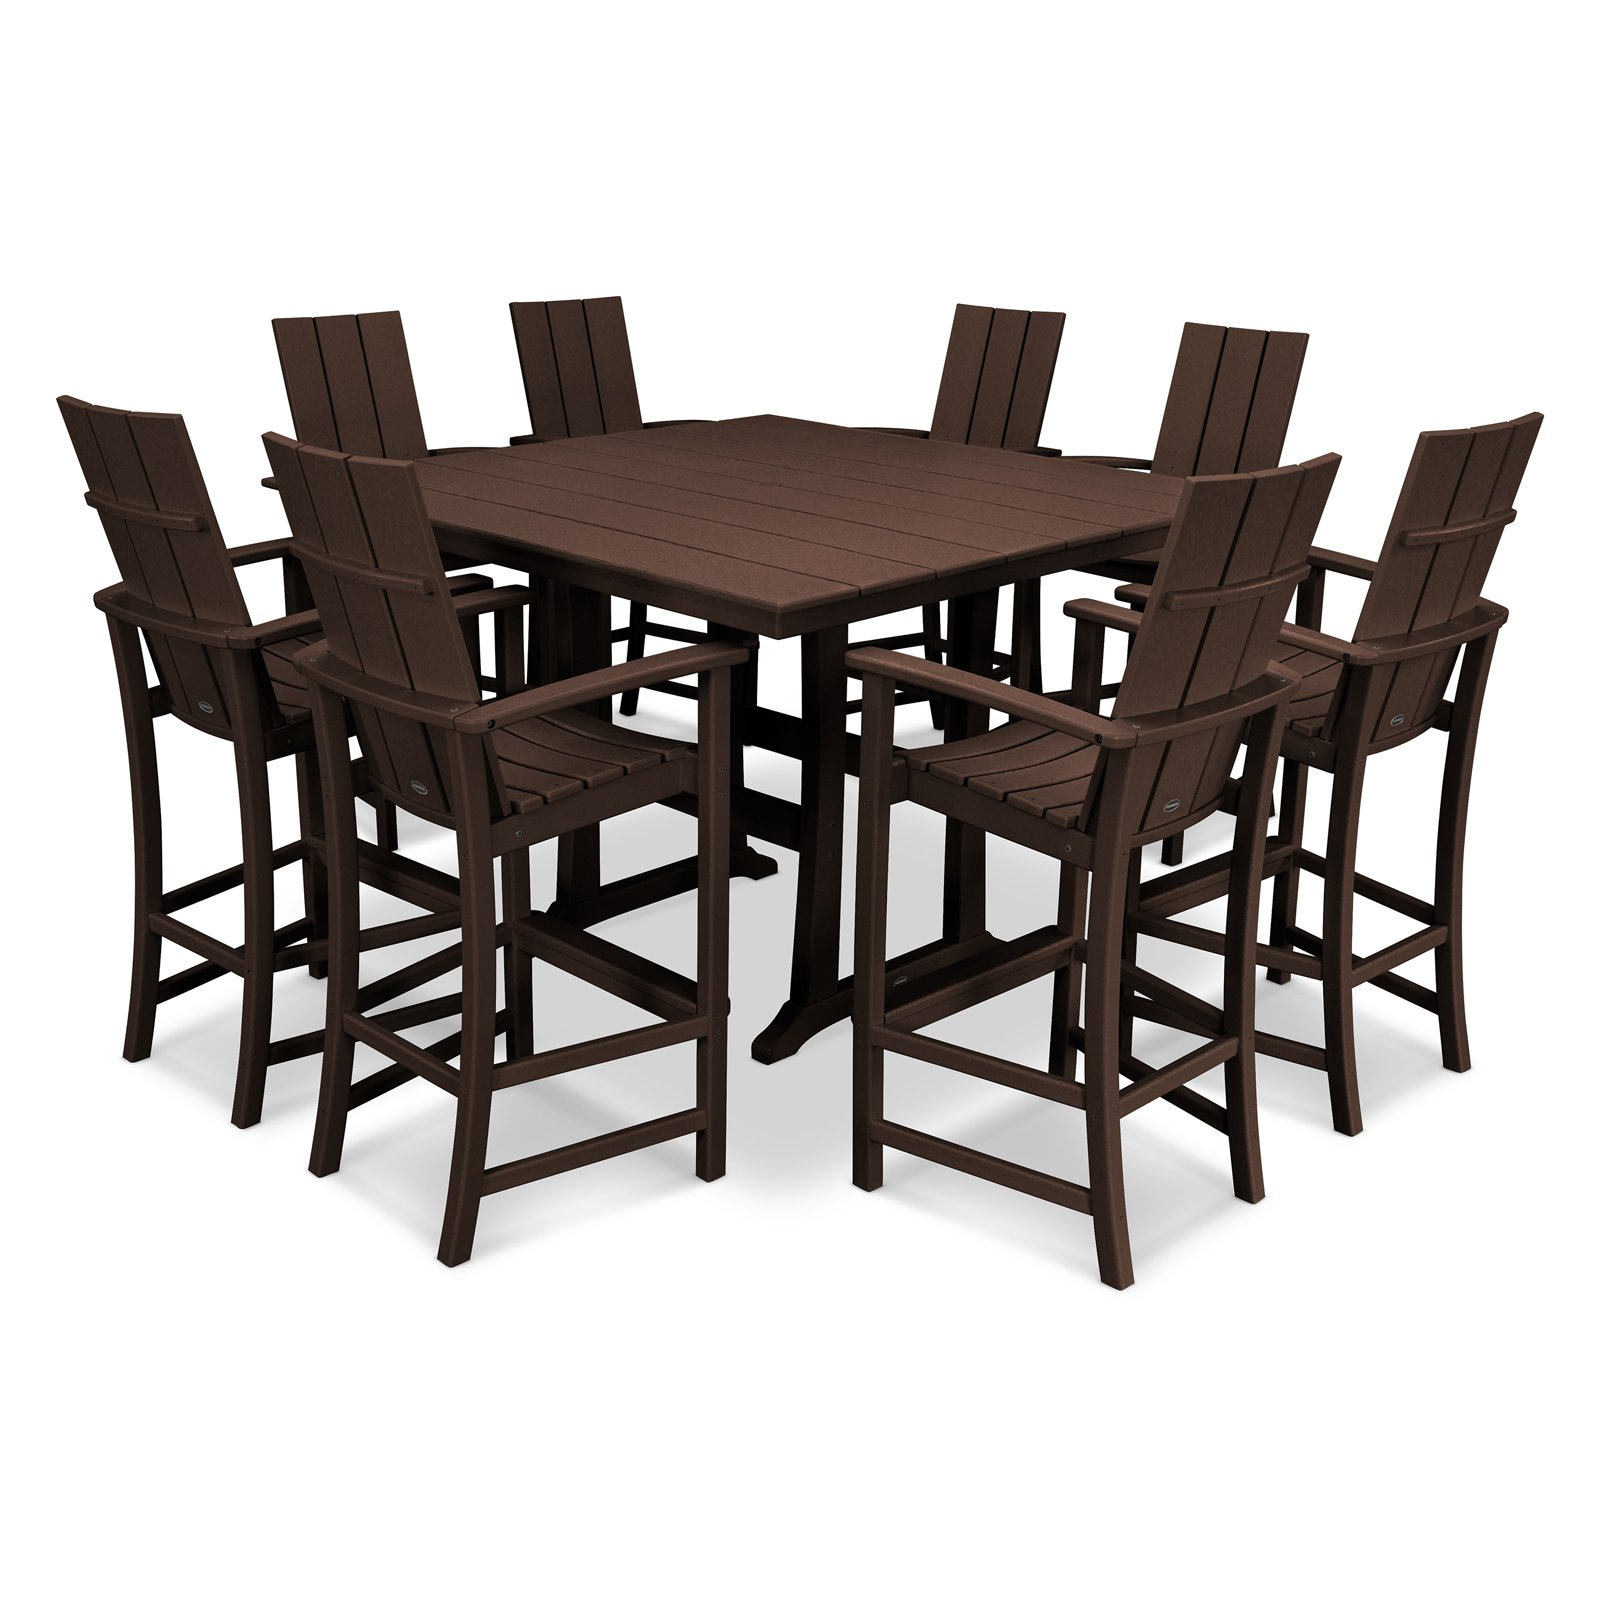 POLYWOOD® Modern Trio Farmhouse Recycled Plastic 9 Piece Adirondack Bar Height Dining Set